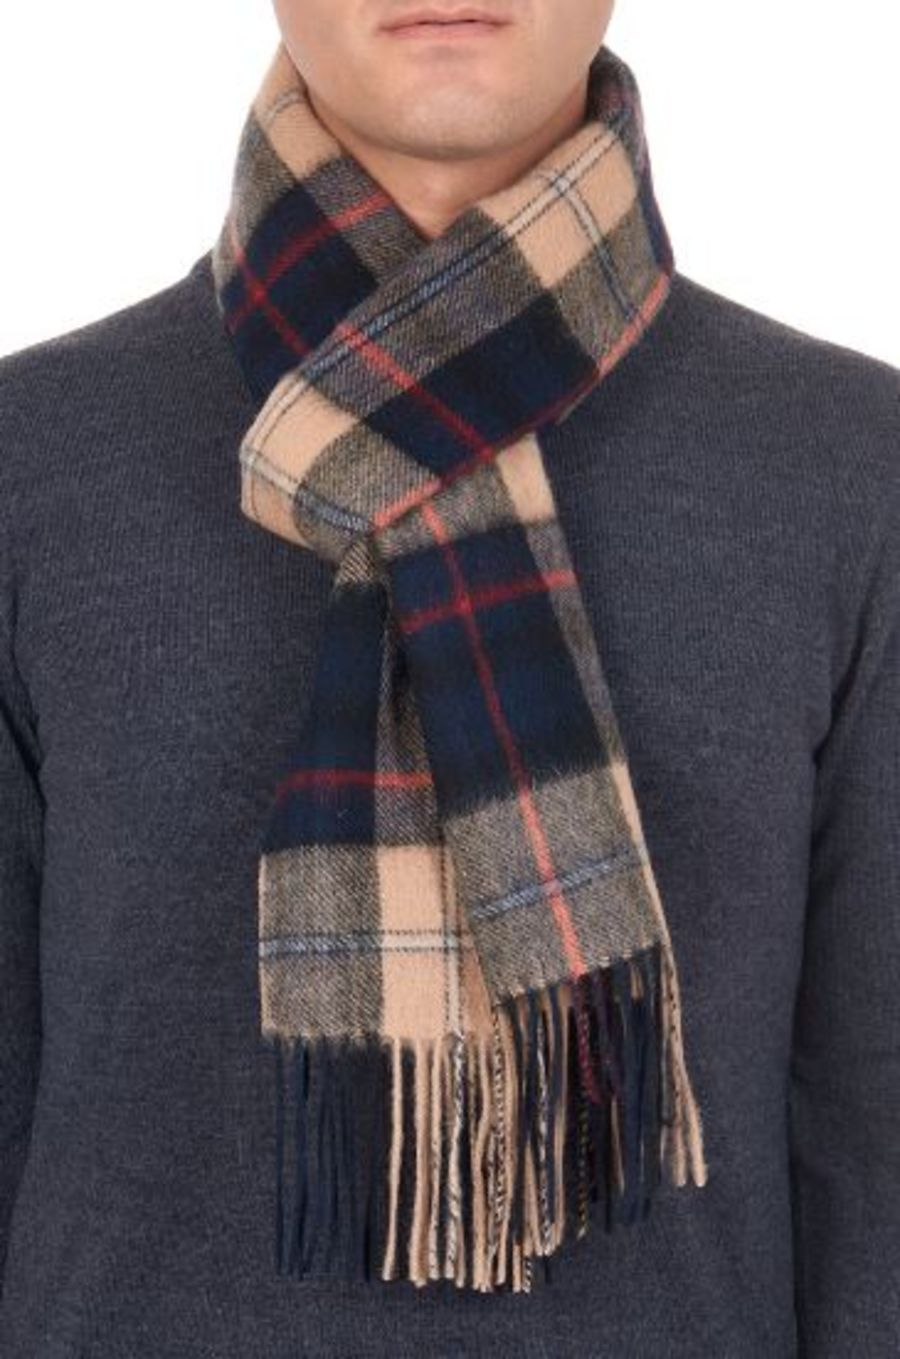 Classic Gents Style 100% Wool Scarf - PBY14W